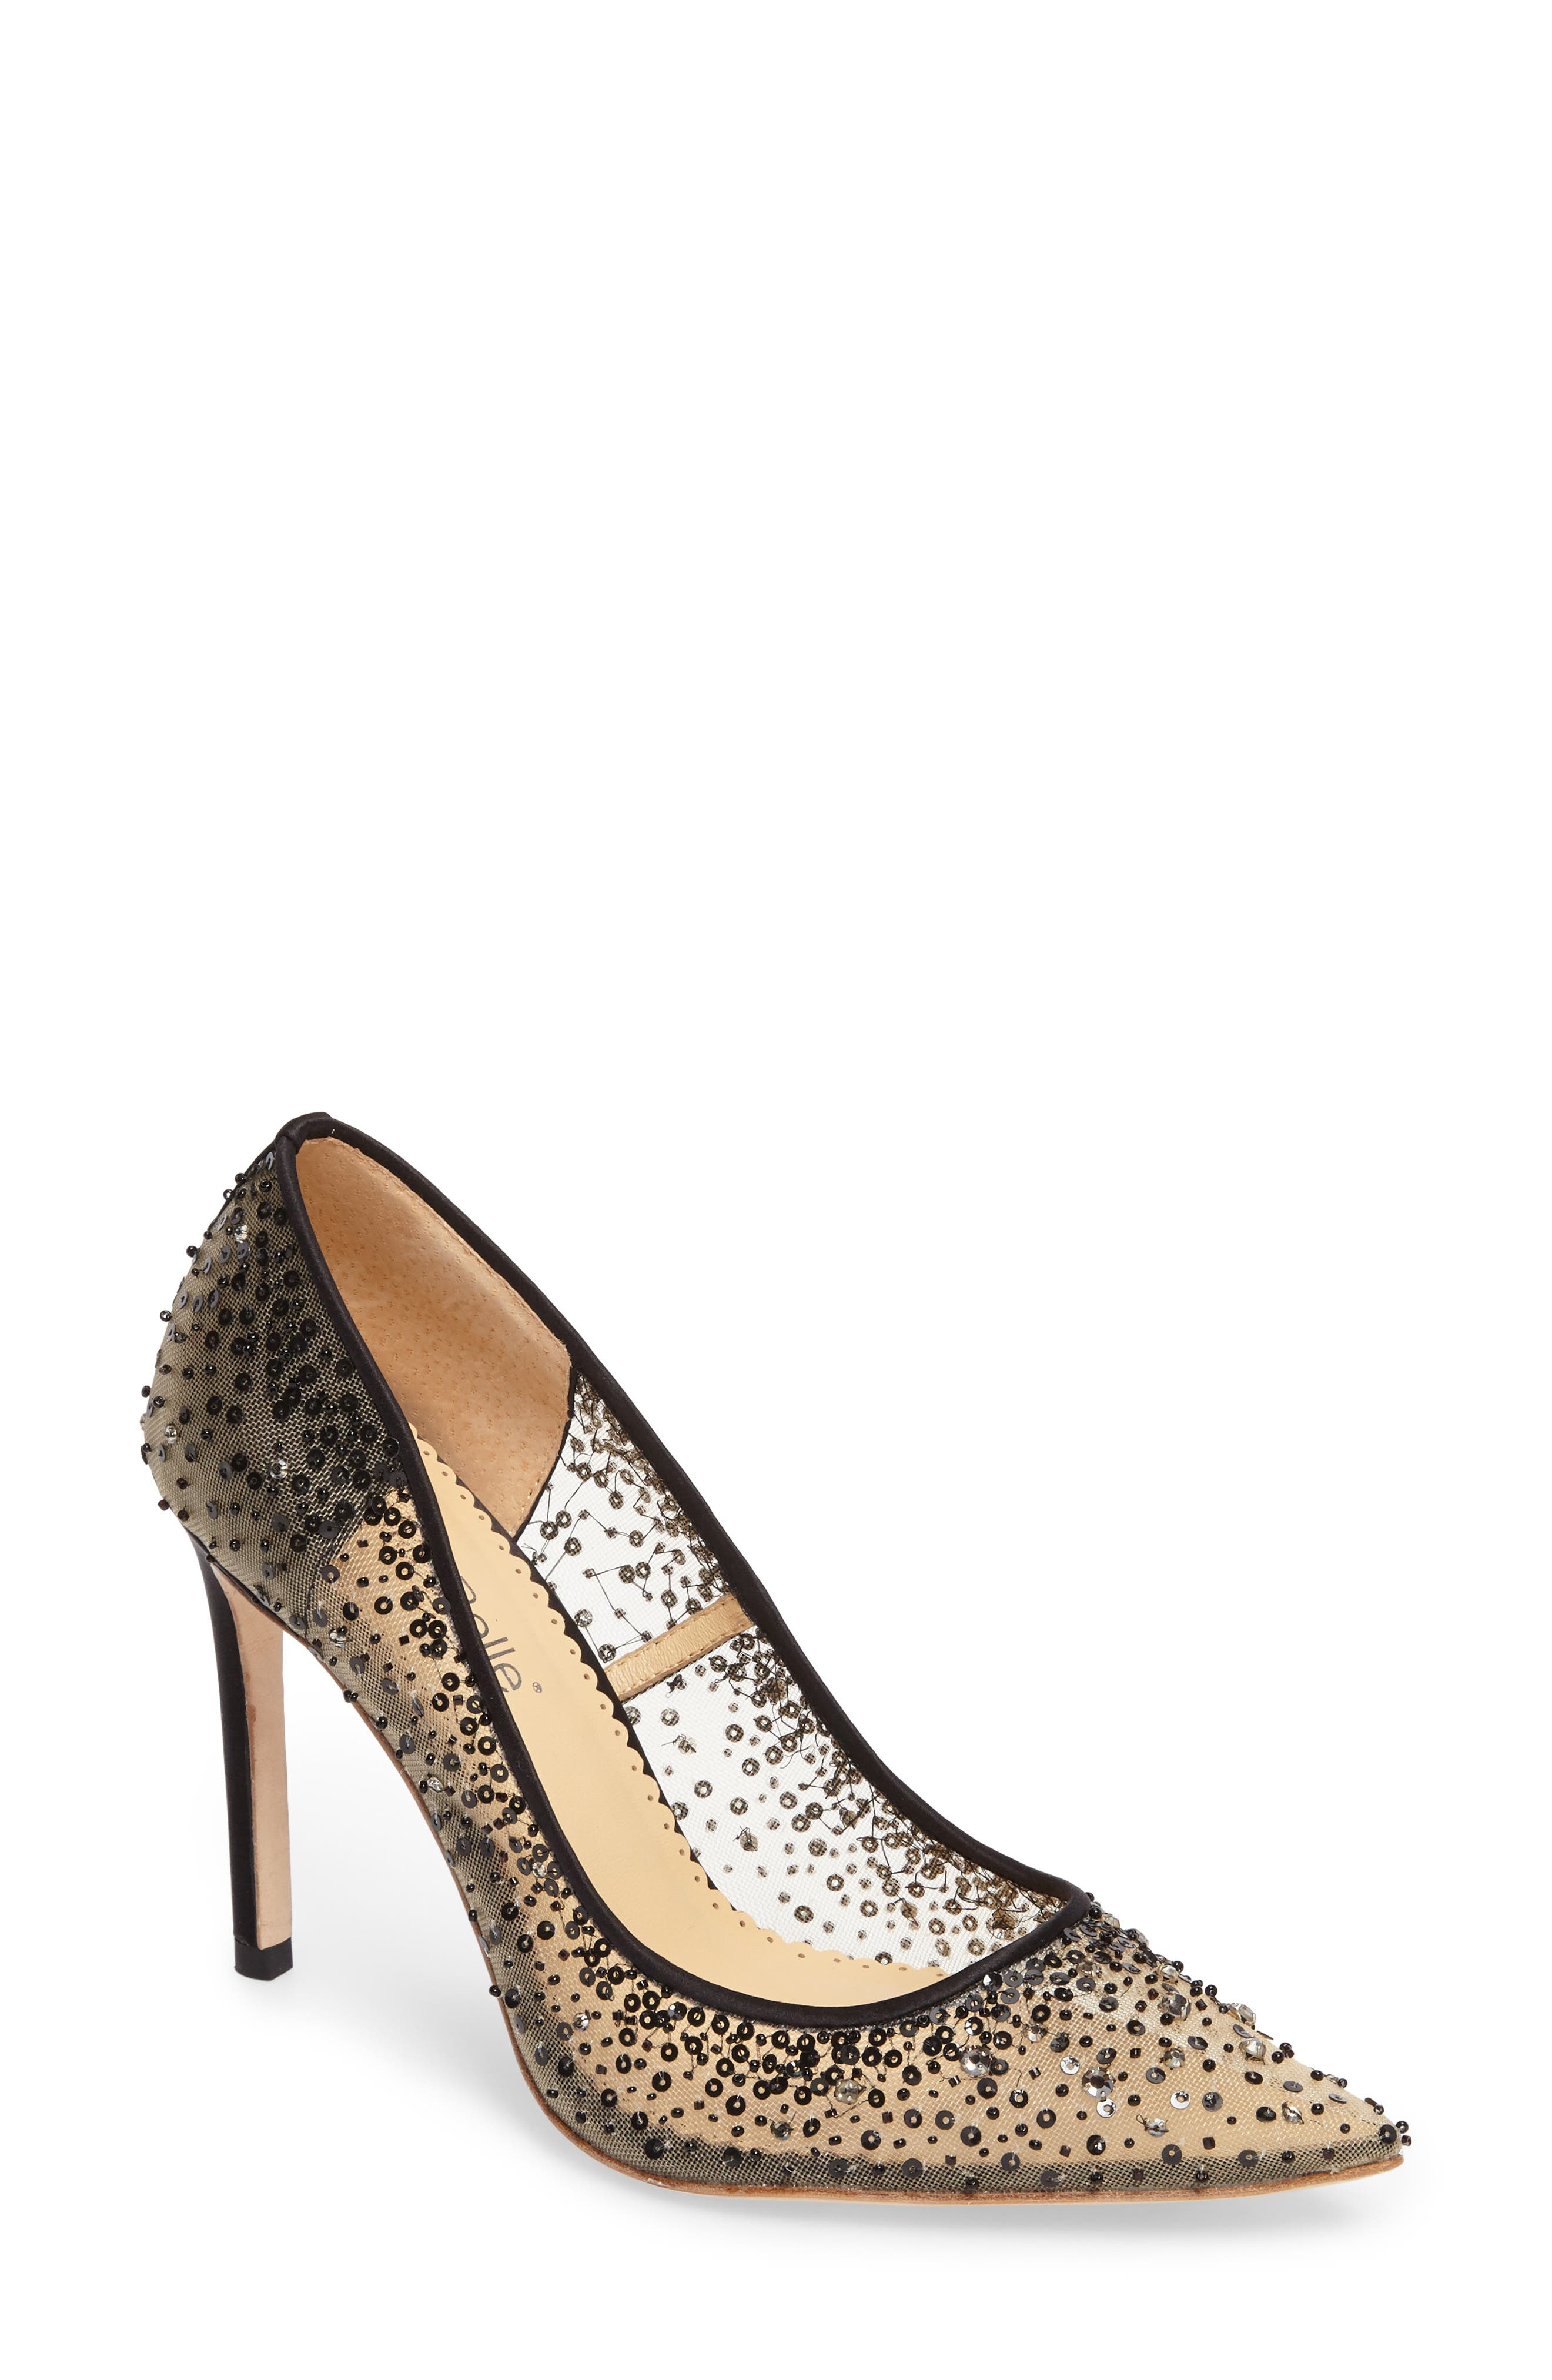 Main Image - Bella Belle Elsa Beaded Illusion Pump (Women)